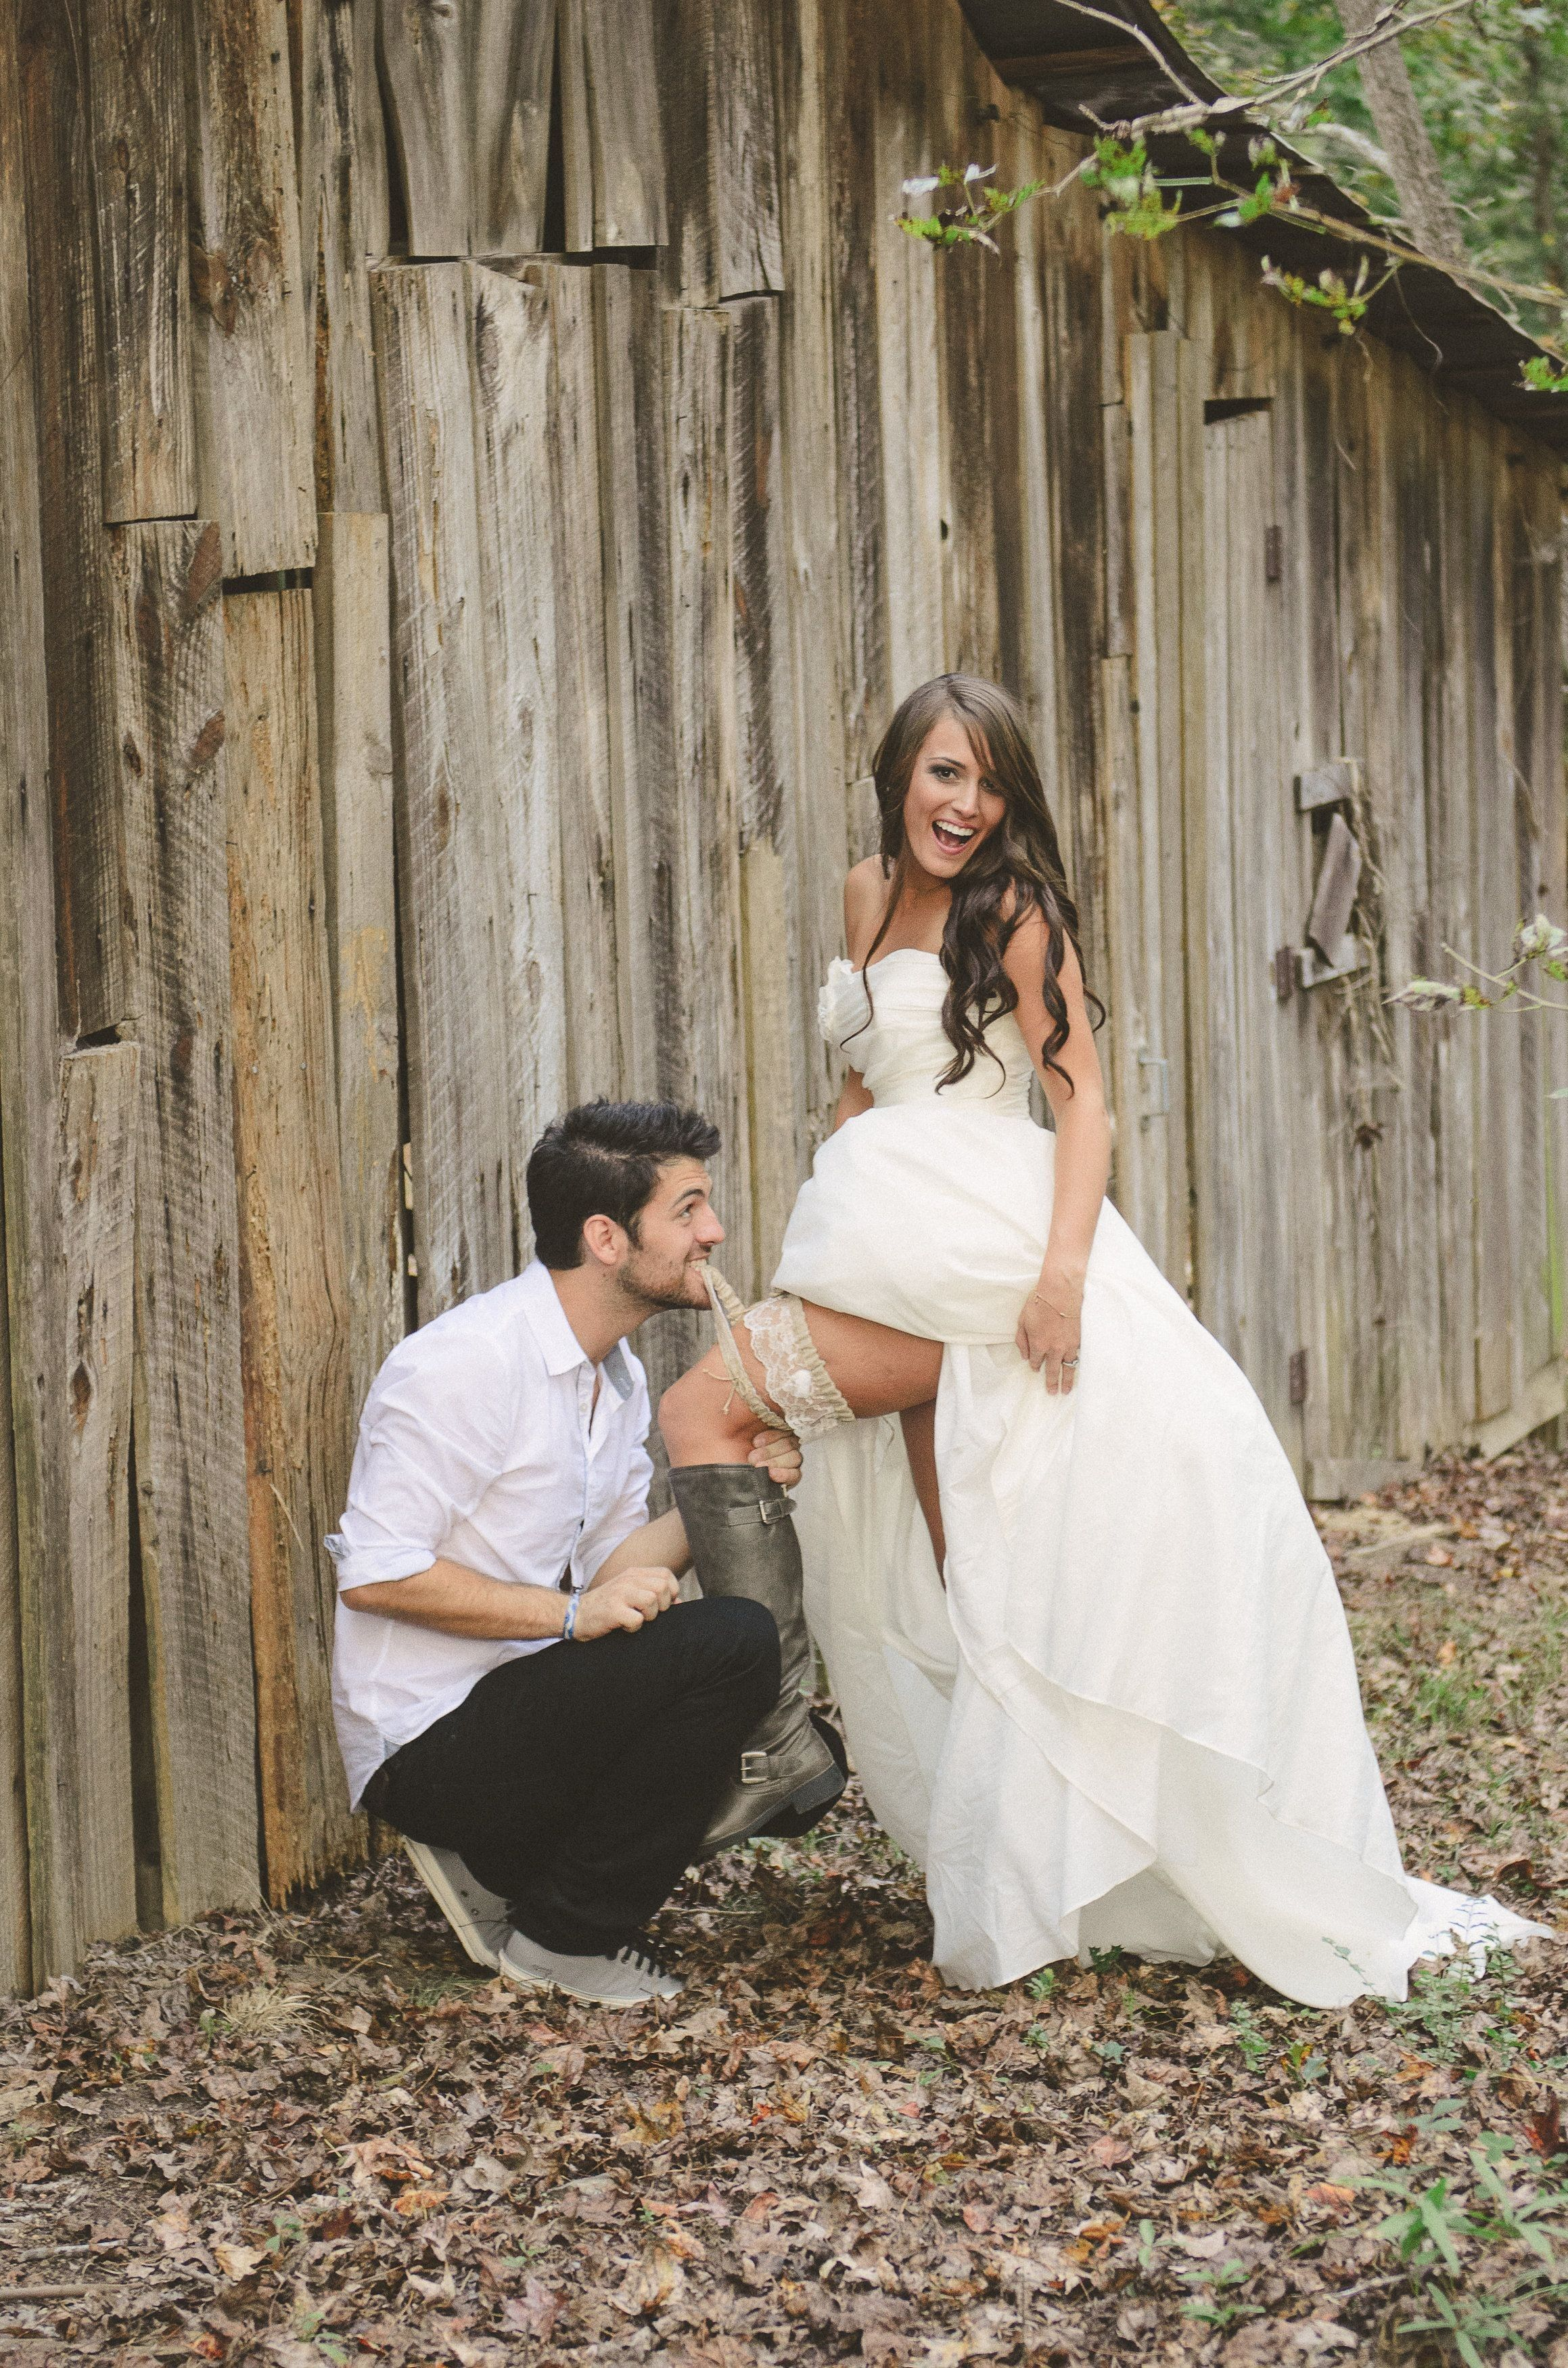 8. 70+ Natural Look And Romance Rustic Wedding Ideas | love and ...